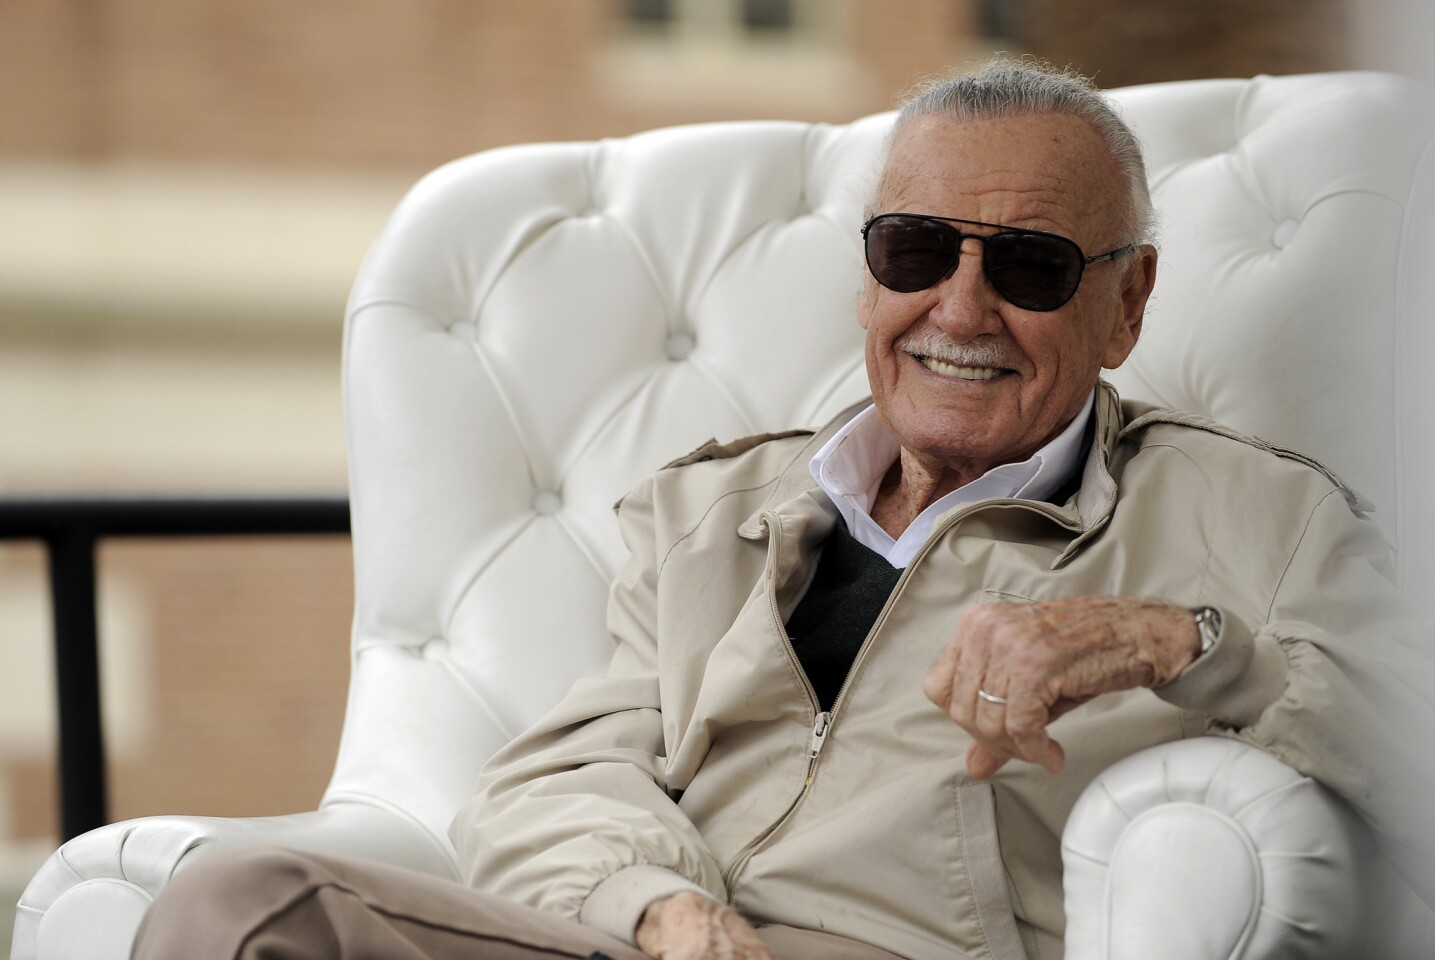 Comic book icon Stan Lee has a relaxed chat during the 2016 Festival of Books in Los Angeles.